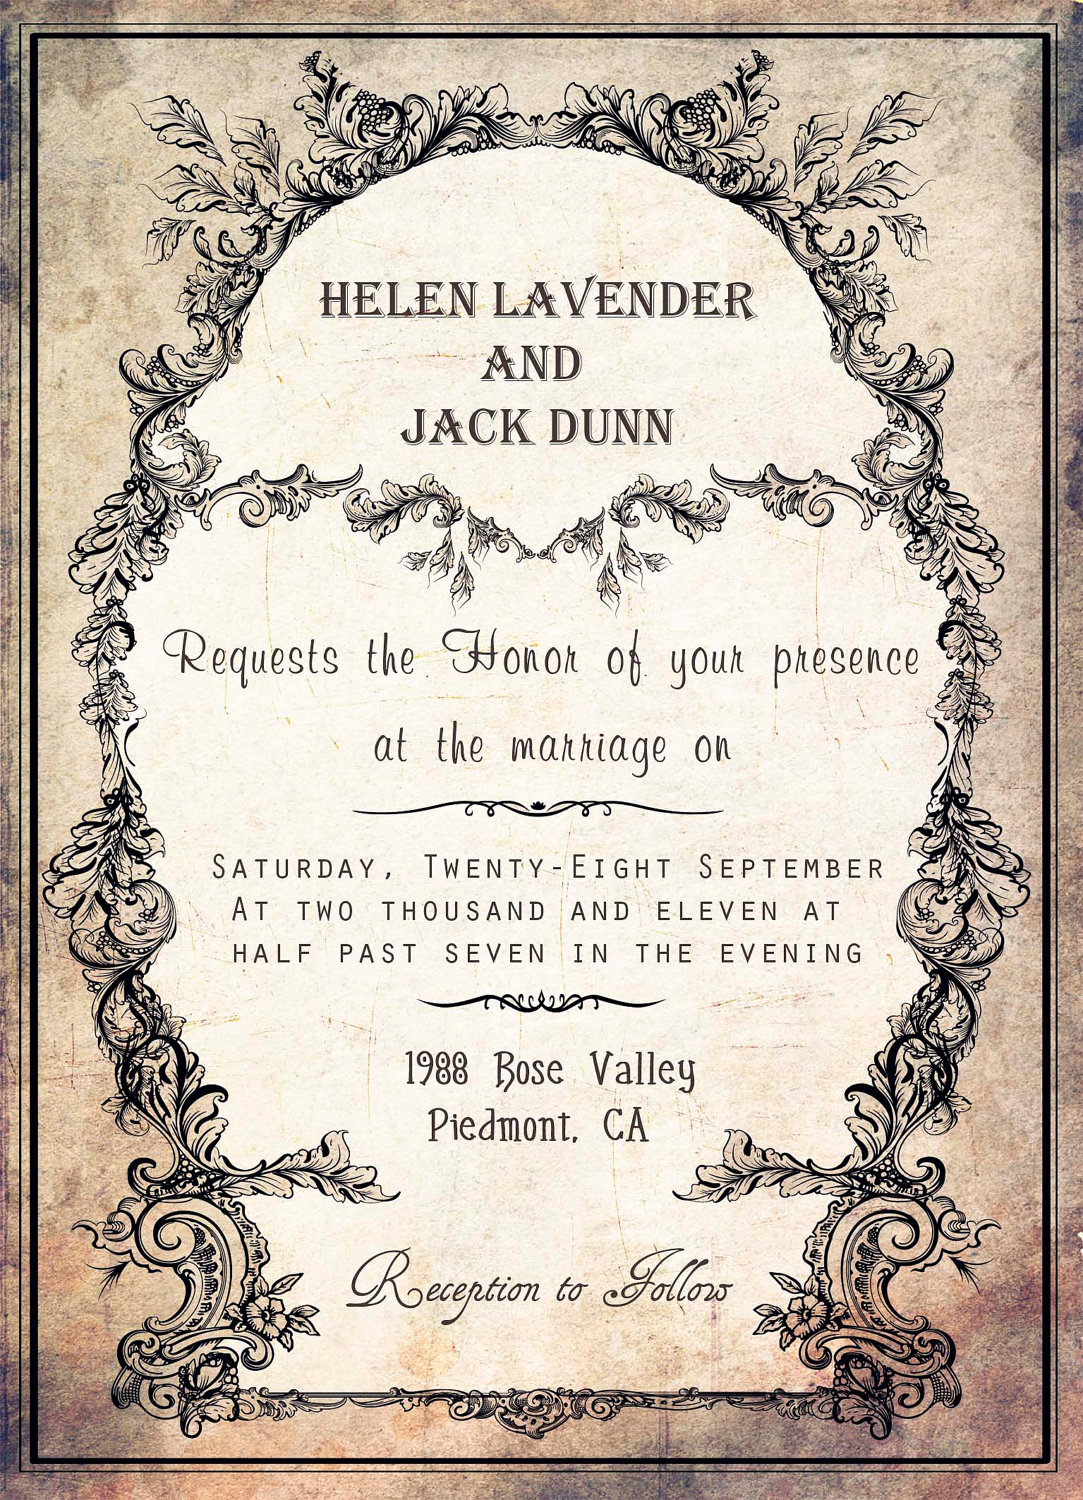 Wedding Invitation Template Peellandfmtk - Wedding invitation templates: western wedding invitations templates